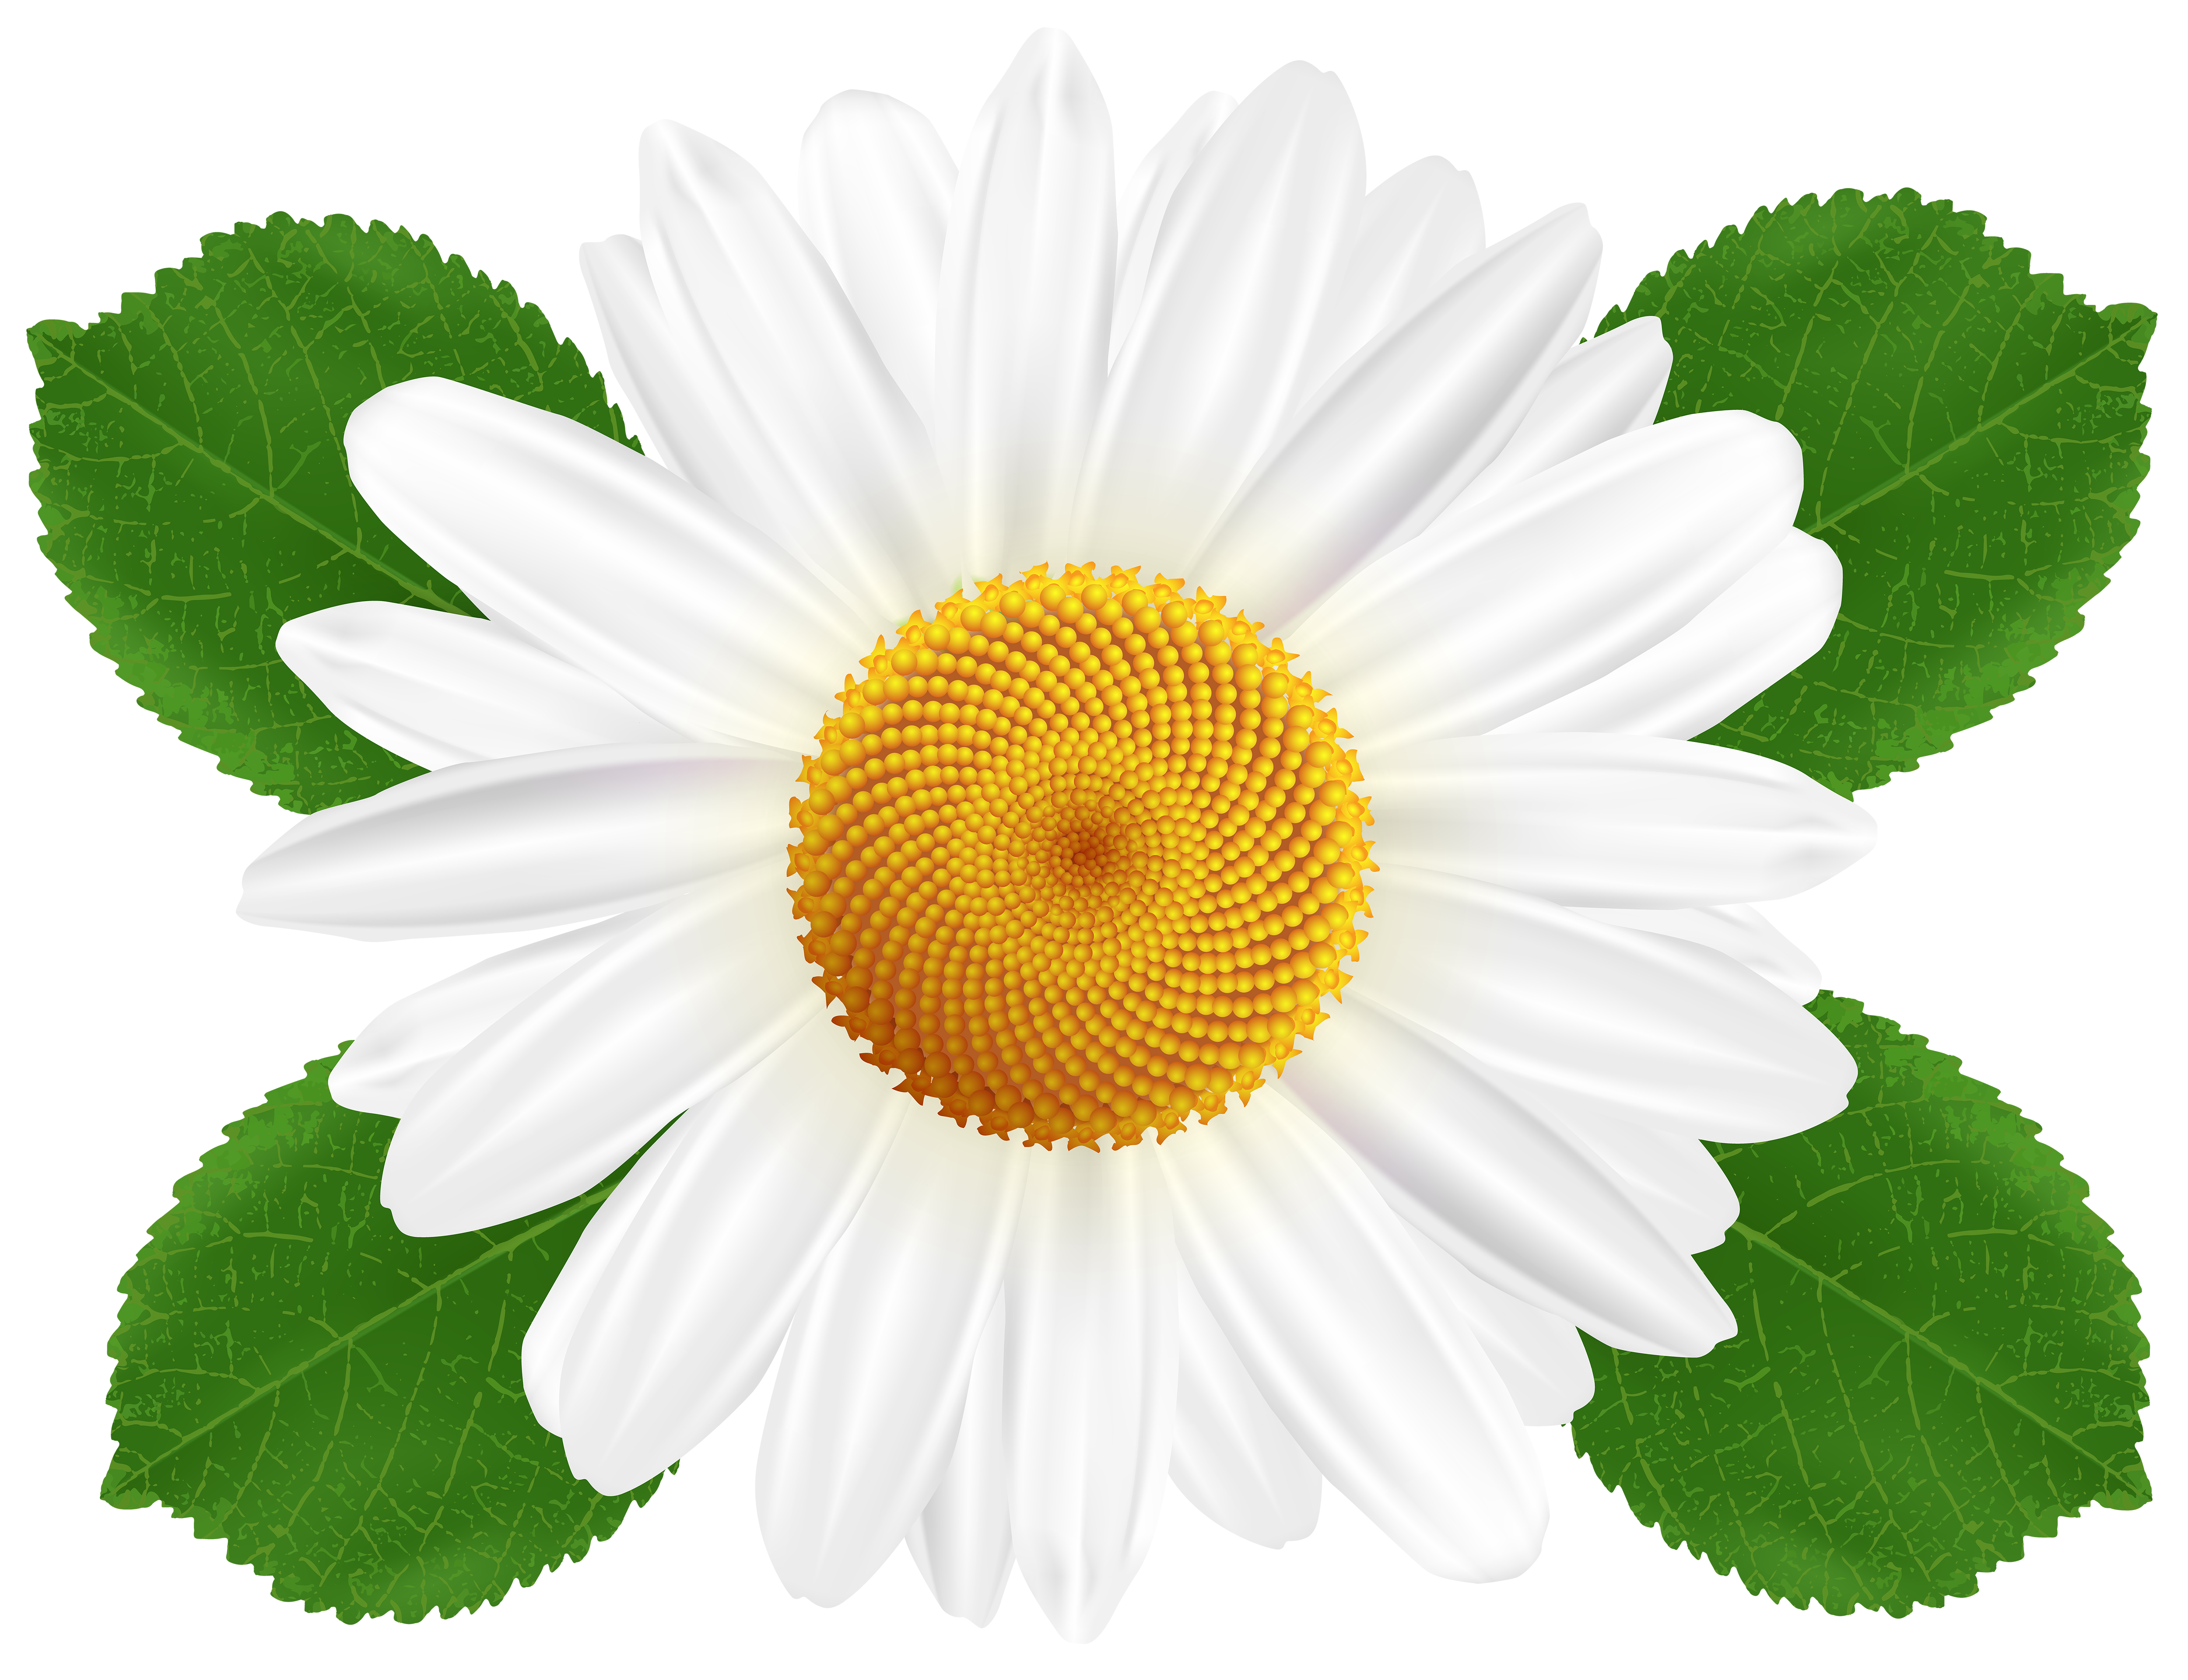 White daisy clipart transparent background jpg black and white download White Daisy Transparent PNG Clip Art | Gallery Yopriceville ... jpg black and white download